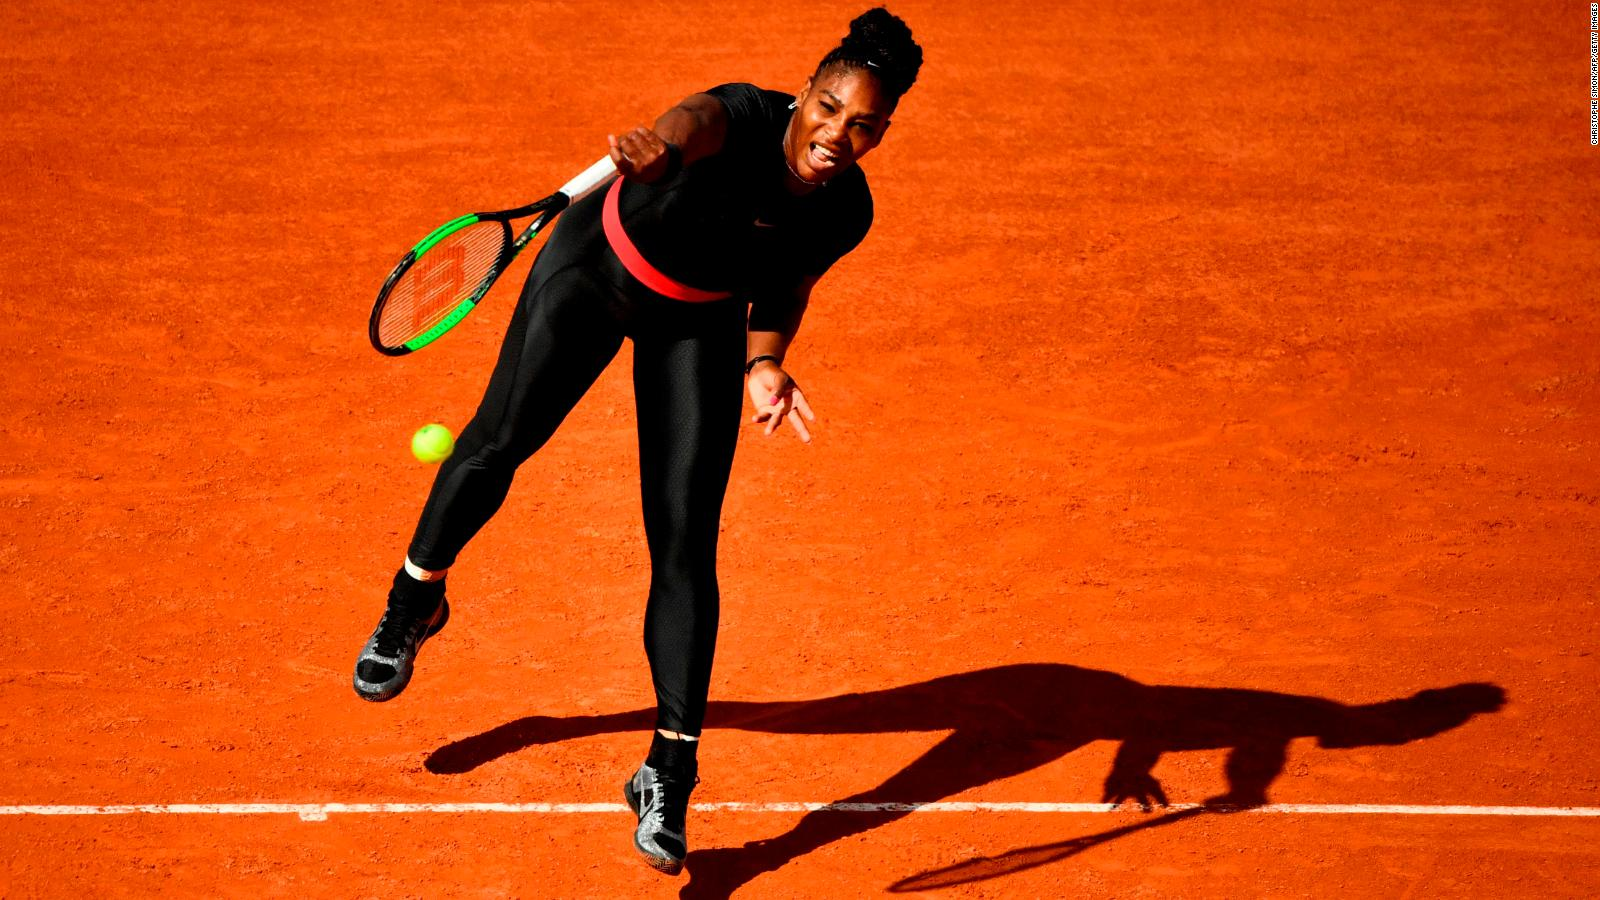 b3c39993 Serena Williams' catsuit set to be consigned to closet, but 'everything is  fine' - CNN